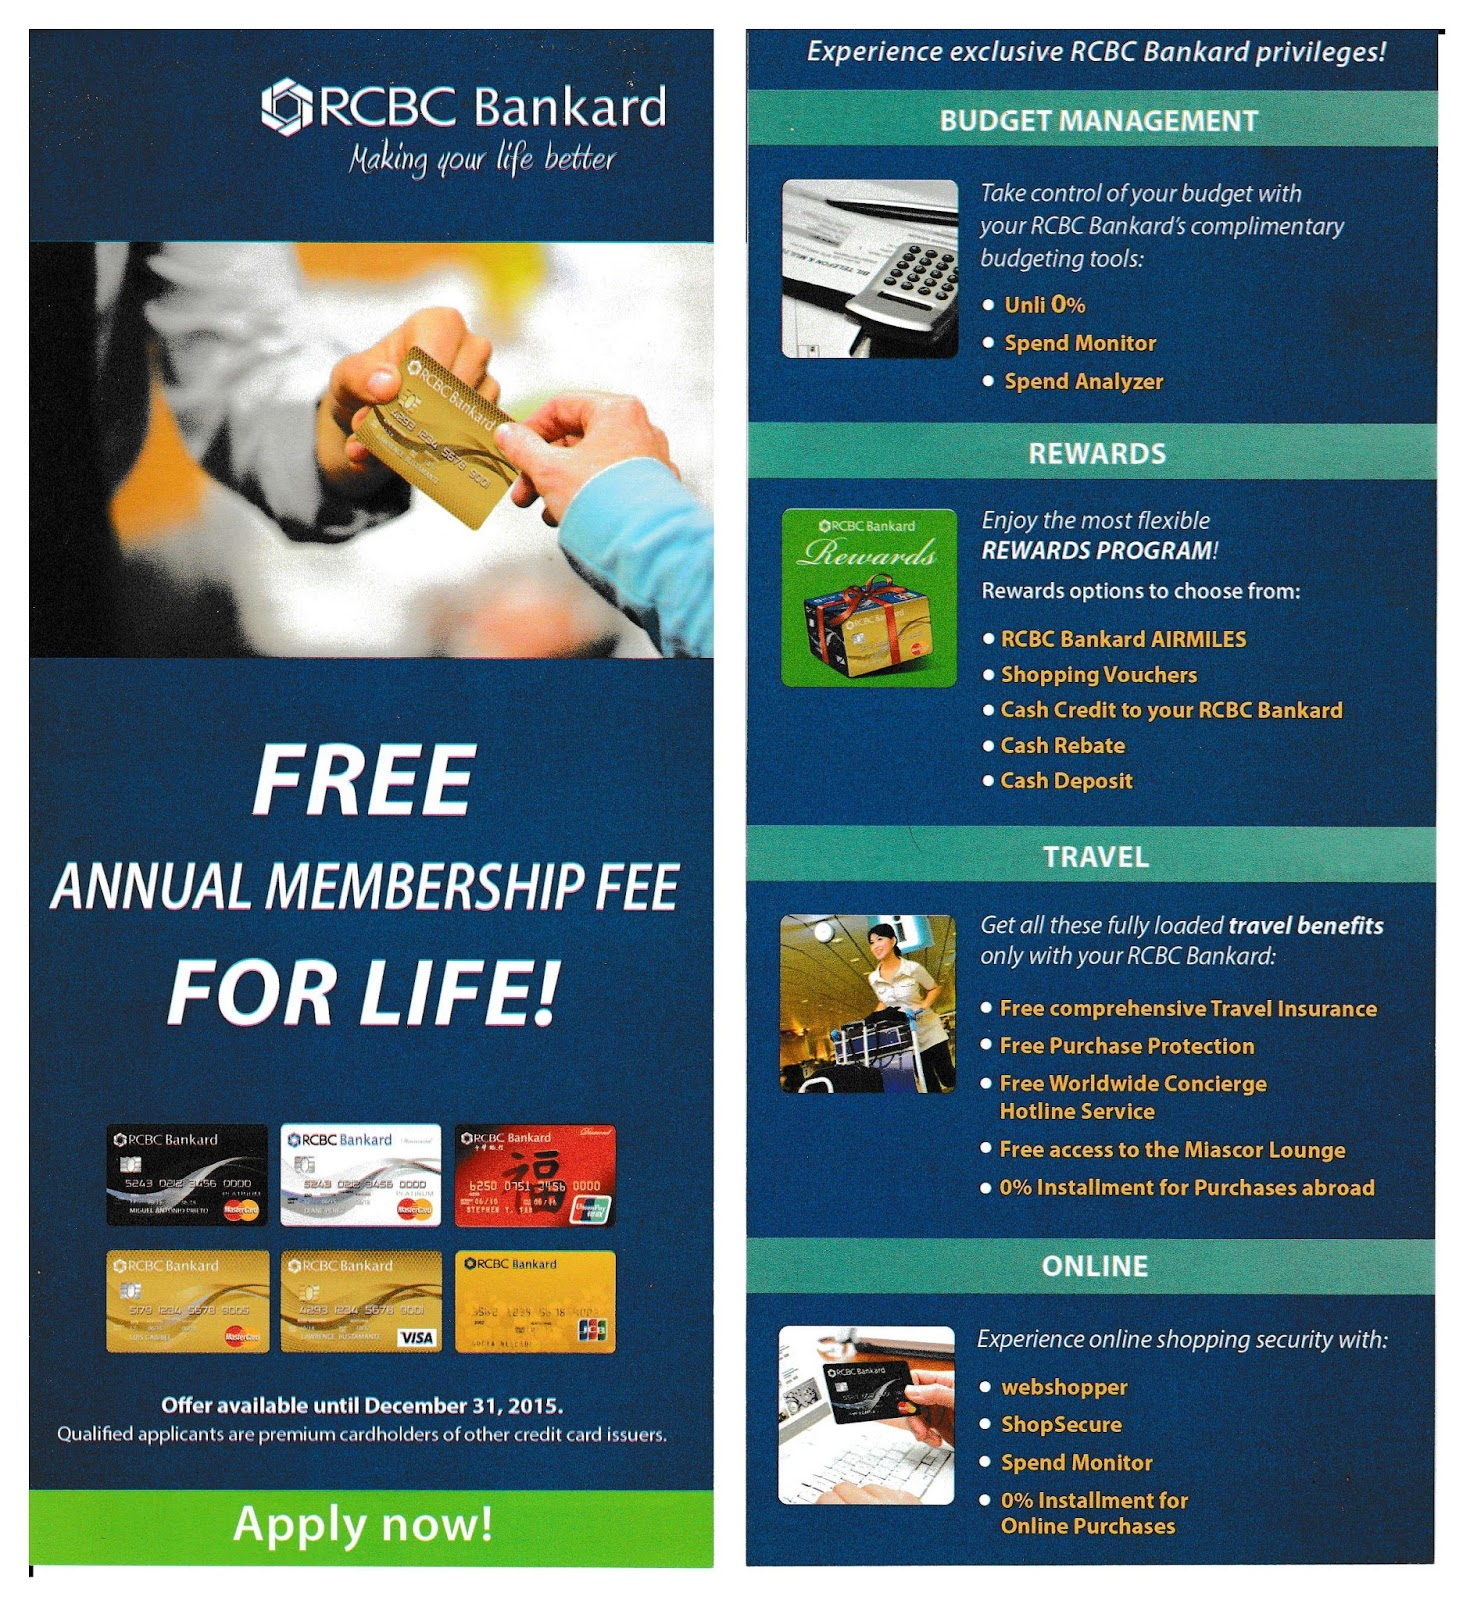 rcbc bankard free annual membership fee for life step by step application instructions. Black Bedroom Furniture Sets. Home Design Ideas